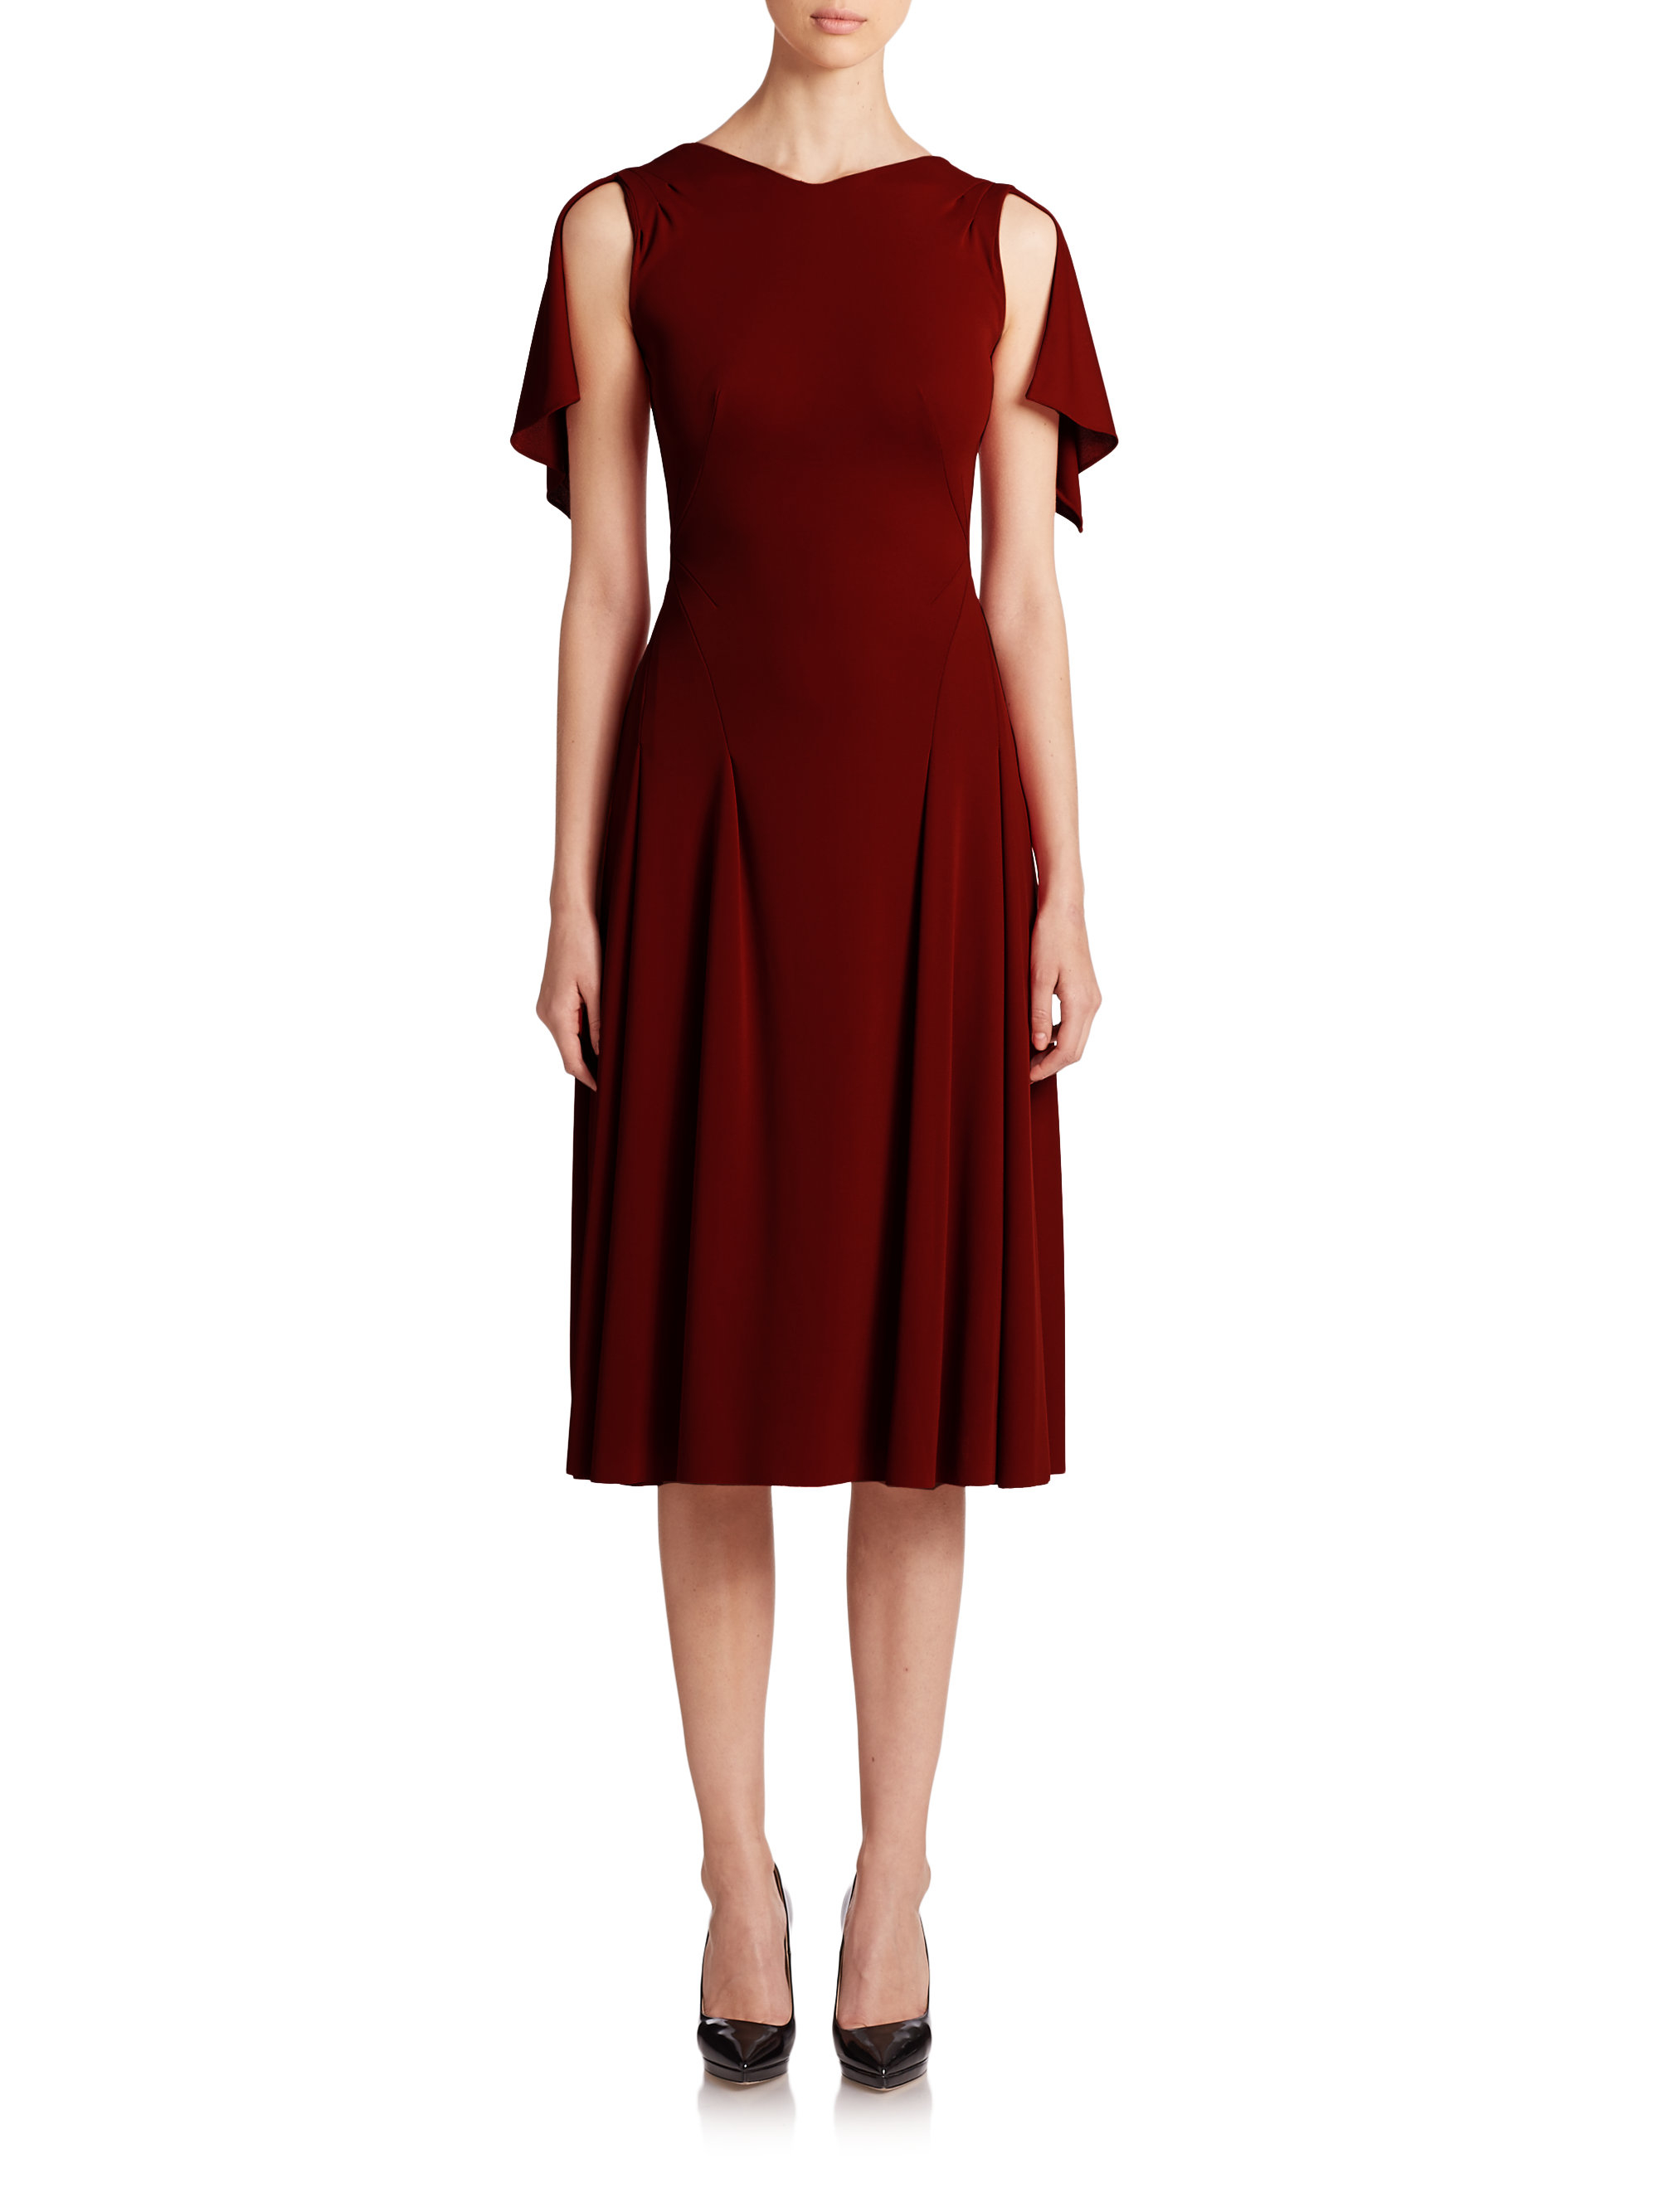 Zac Posen Cocktail Dresses 13